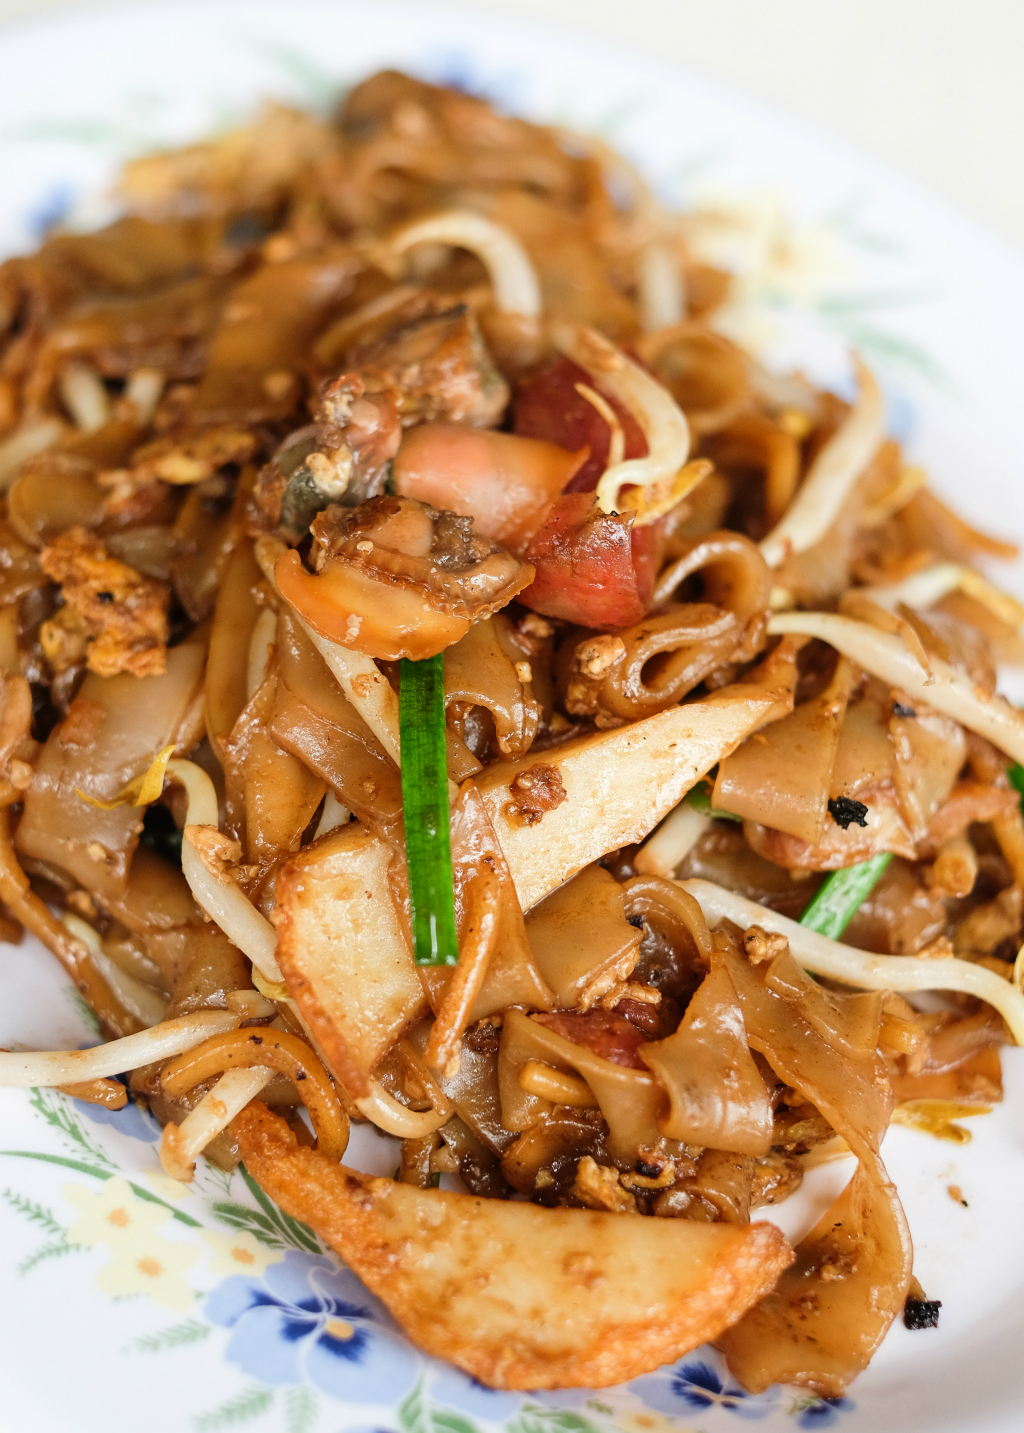 Armenian Street Fried Kway Teow